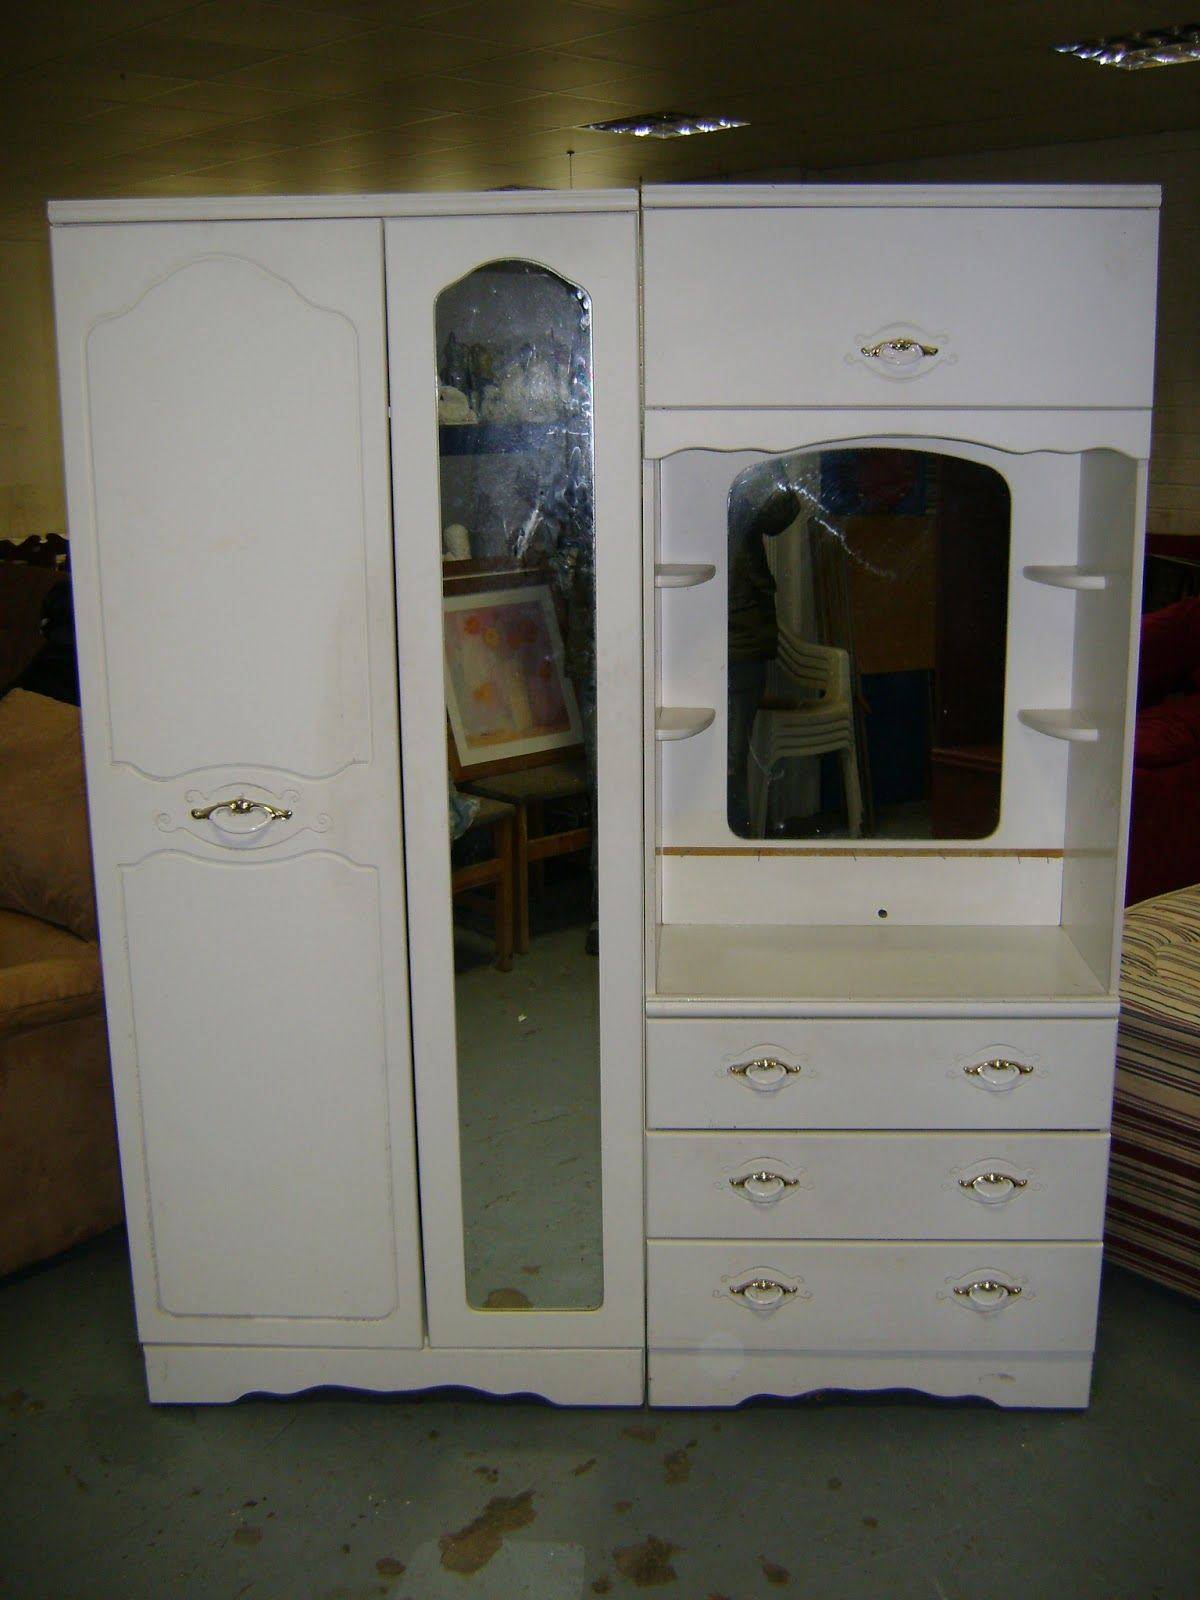 Deccie S Done Deal Second Hand Furniture House Clearances New Stock In Store Now More Wardrobes Than House Clearance Second Hand Furniture Home Furniture